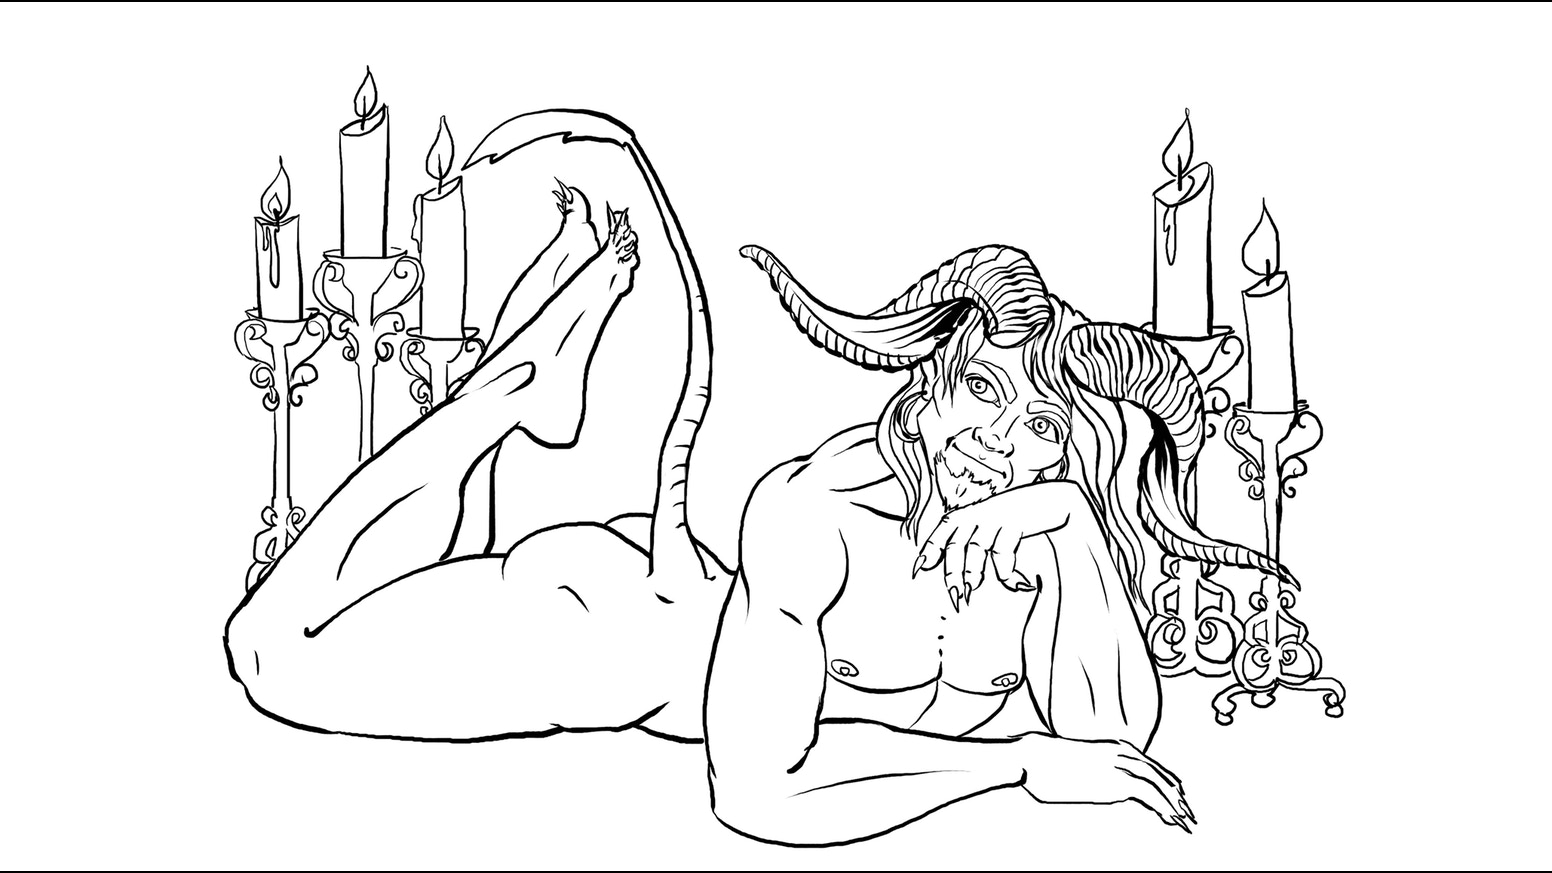 Coloring book html5 - Dungeons After Dark Is An Adult Coloring Book Of Fantasy Races And Creatures In Pin